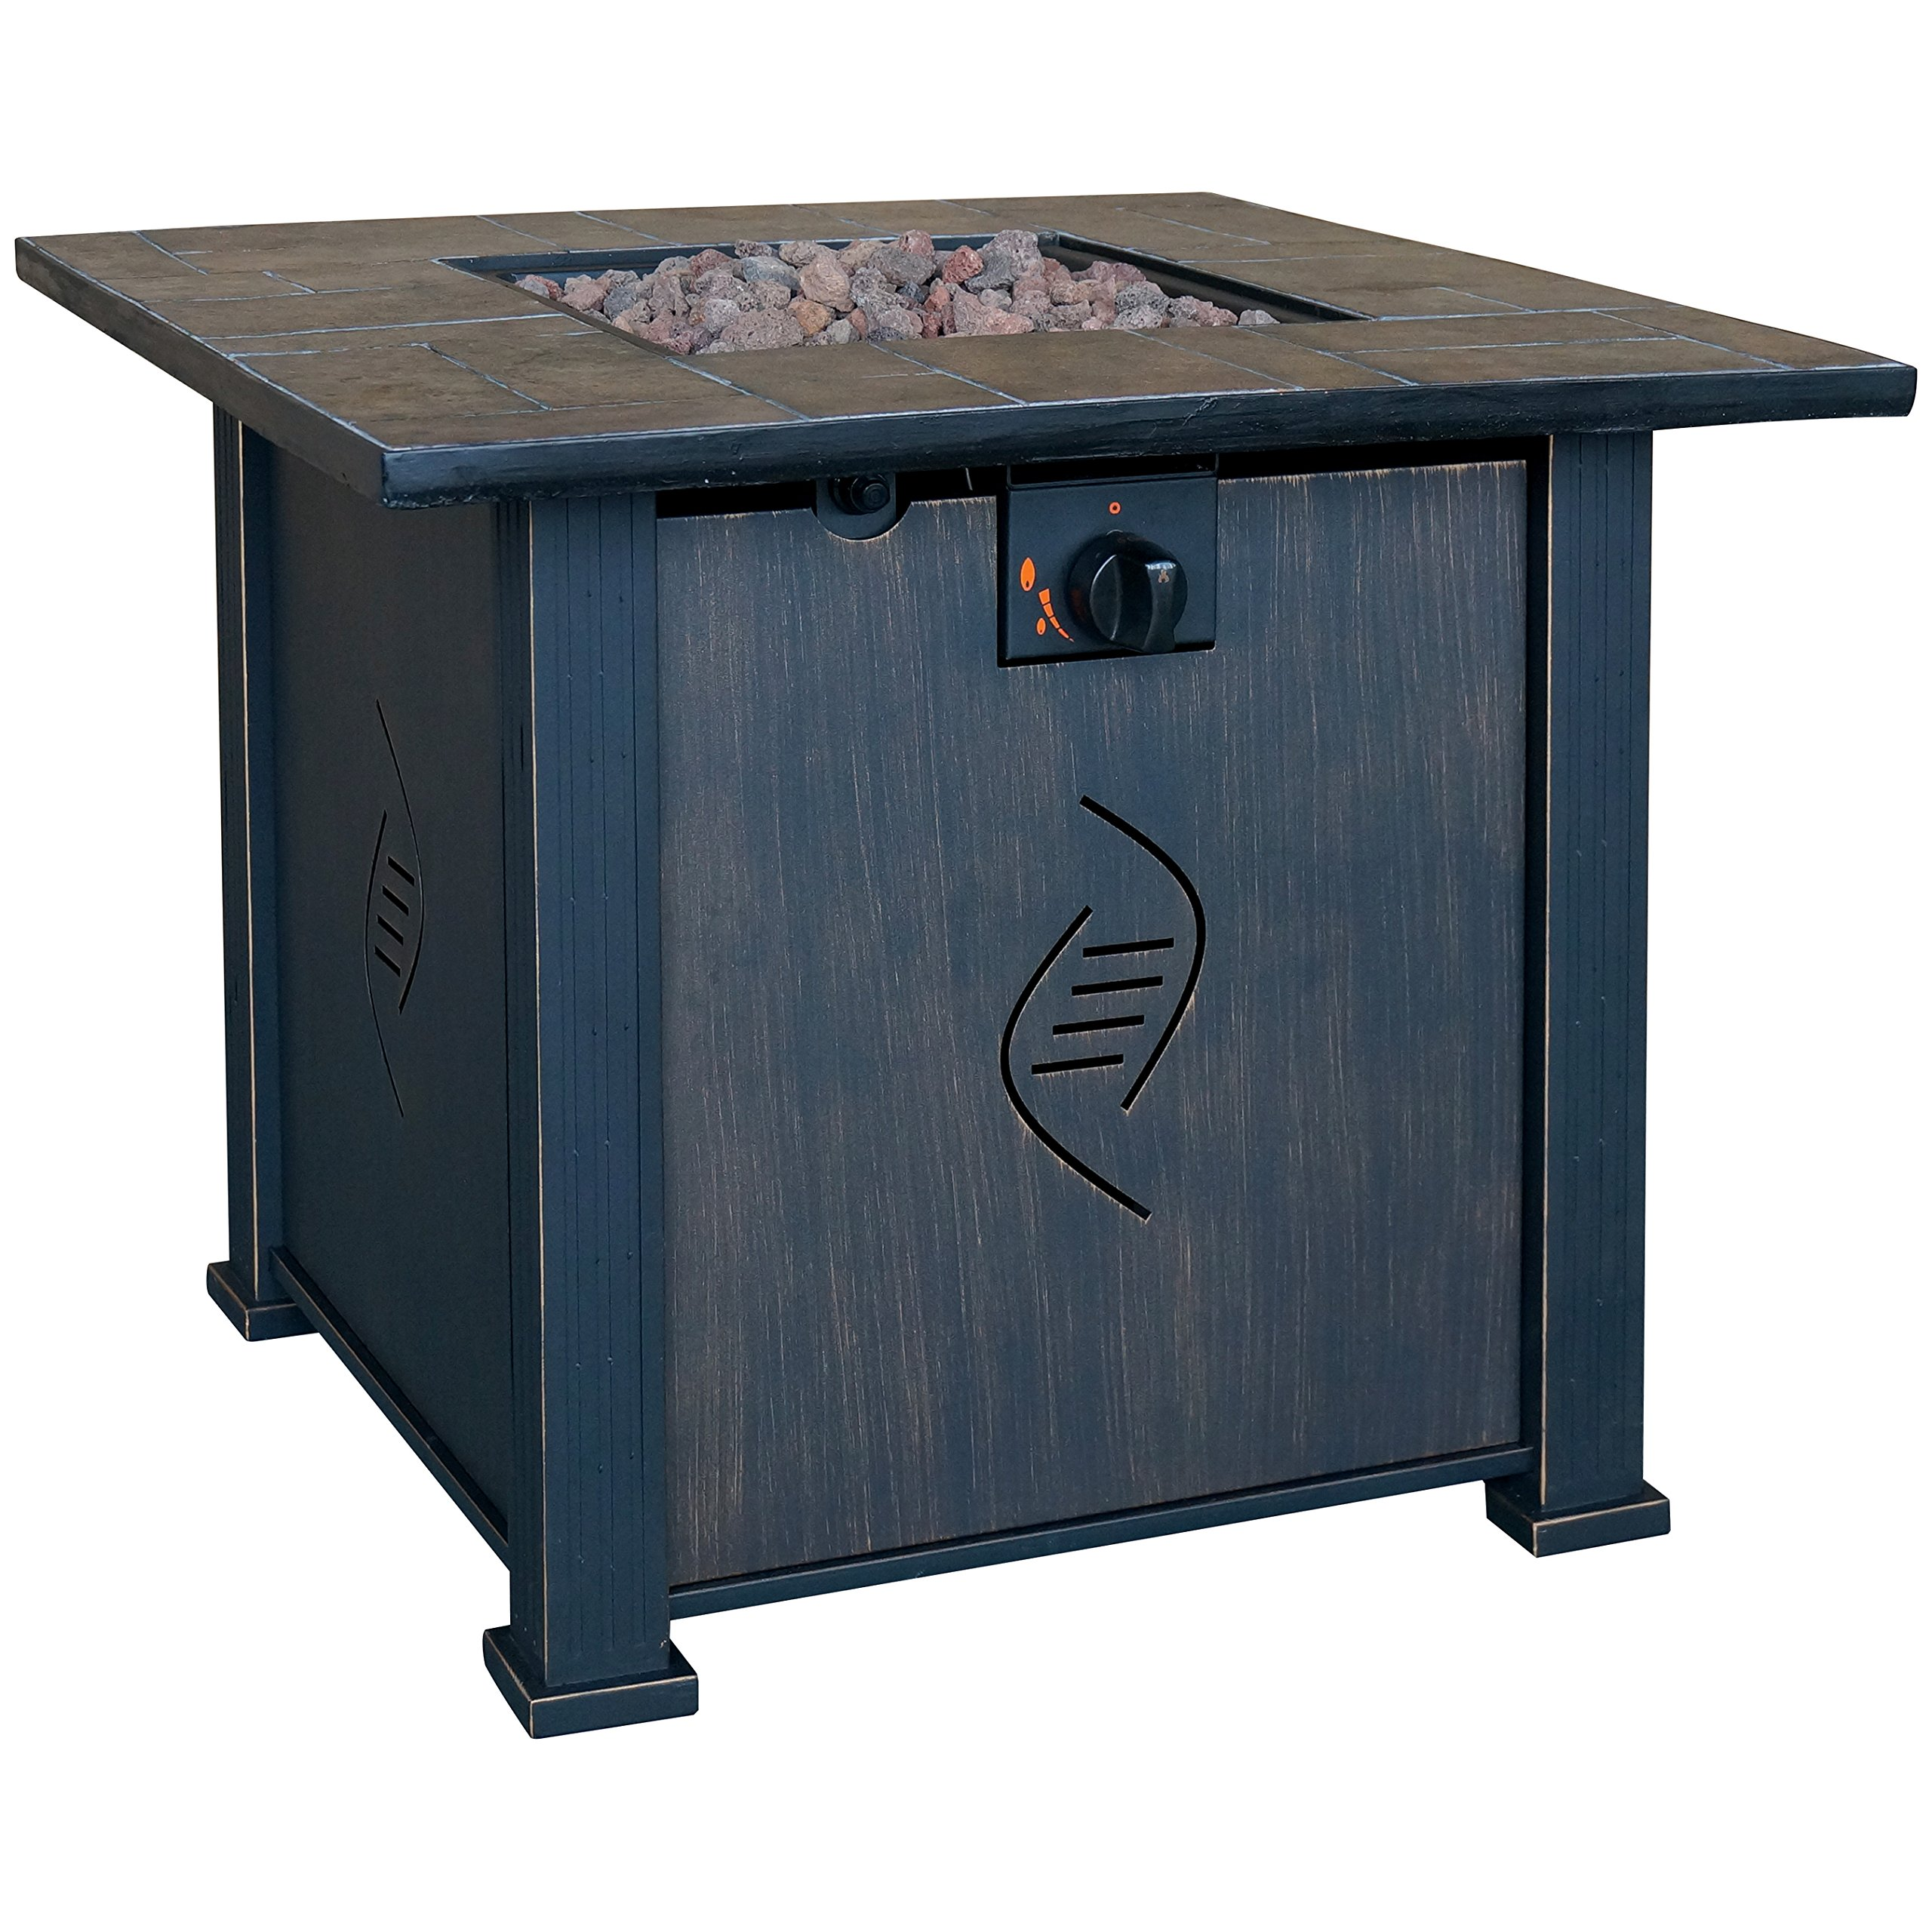 Bond Manufacturing 68487A lari Outdoor Gas Fire Pit Table with Antique, Black by Bond Manufacturing